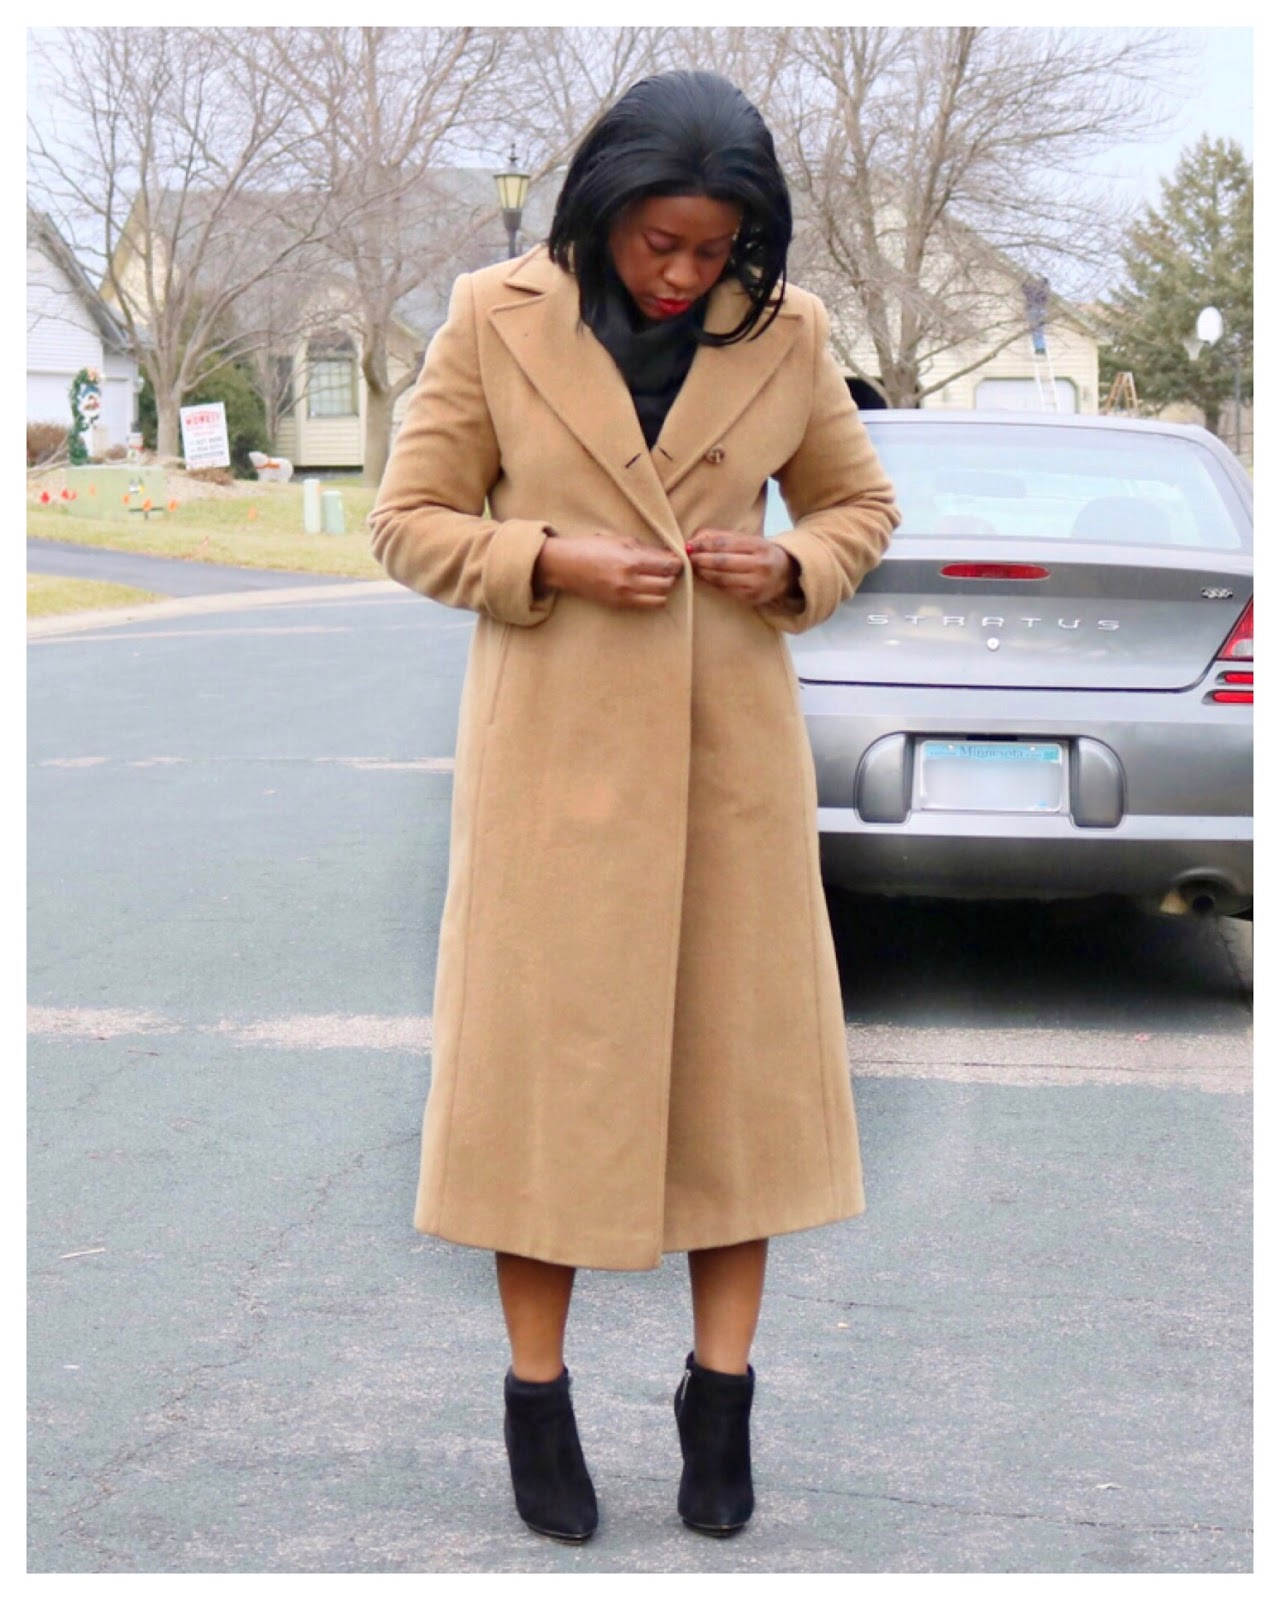 Beauty's Fashion Zone: Camel Color Coat + Black Ankle Boots